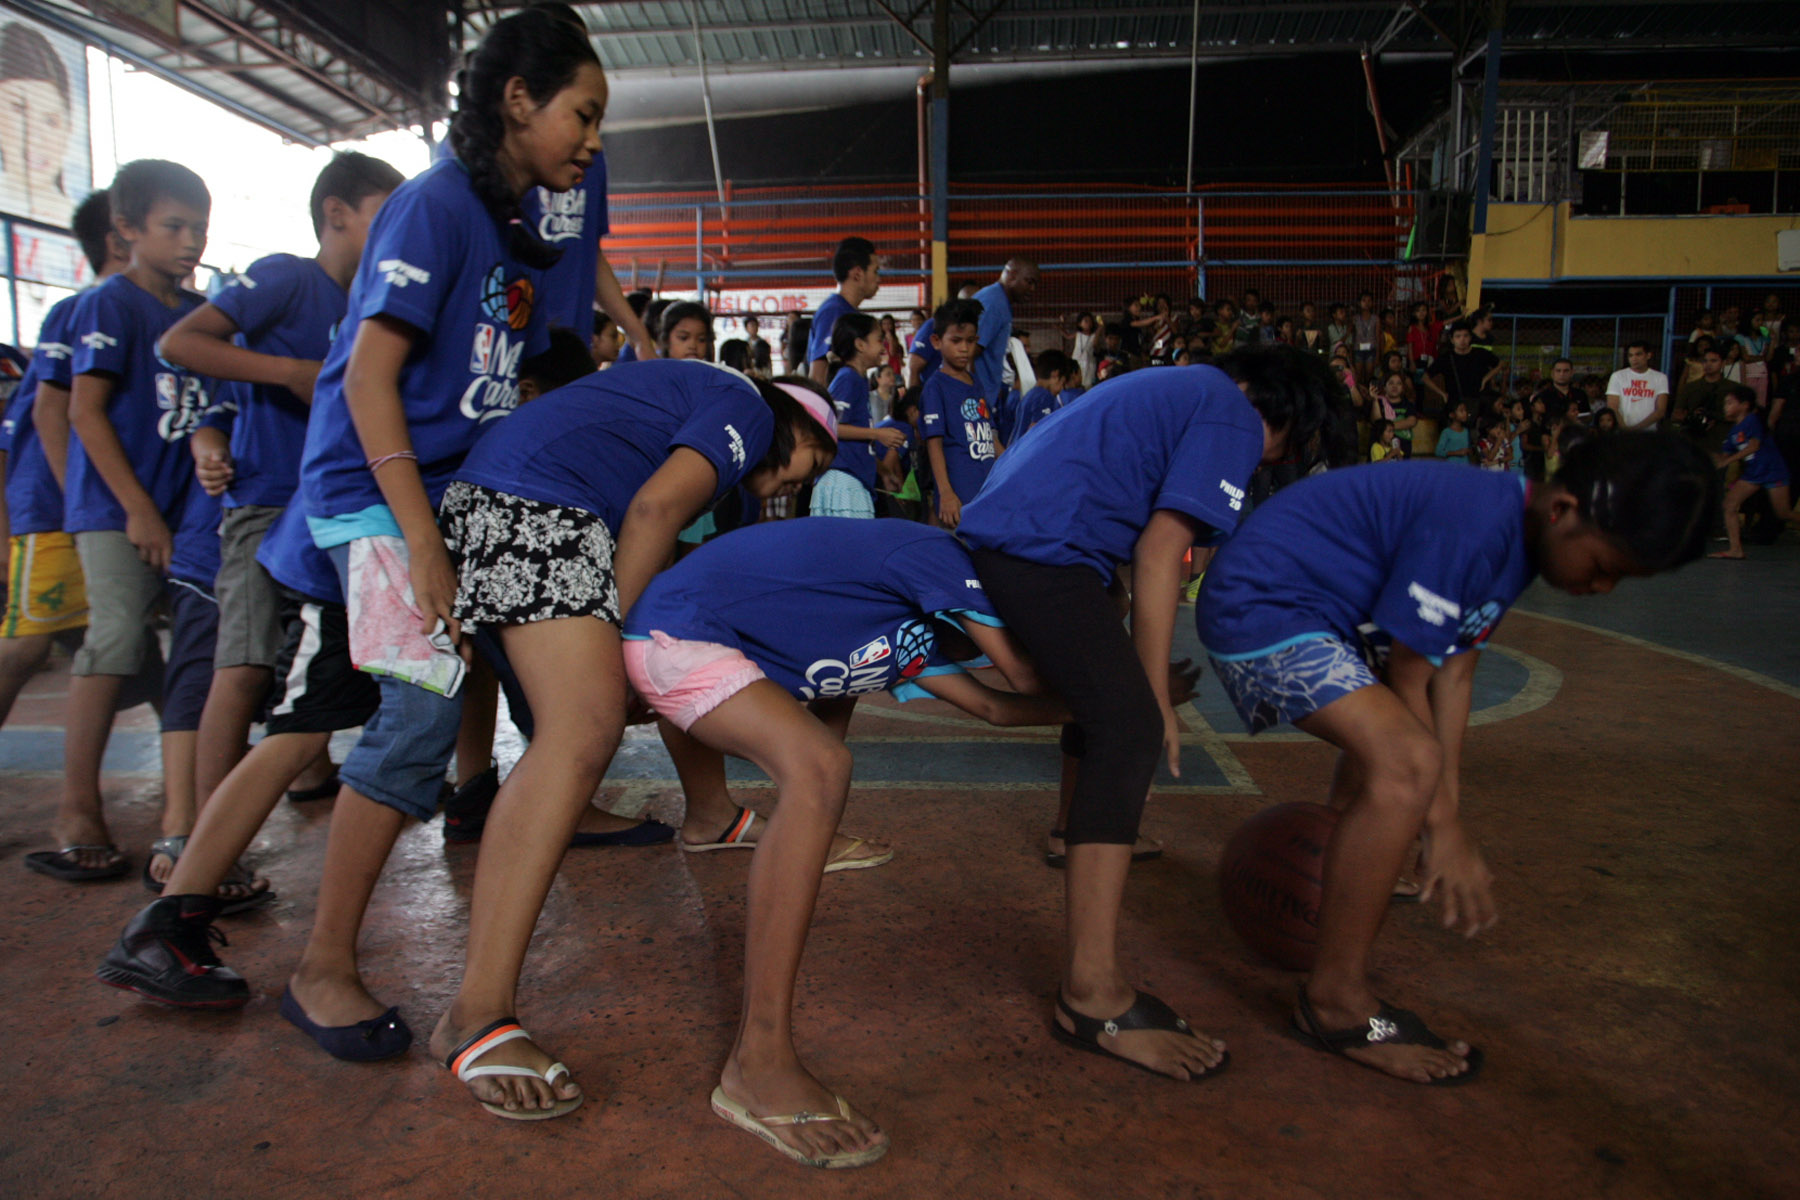 Kids participate in drills that encourage them to work together. Photo by Josh Albelda/Rappler